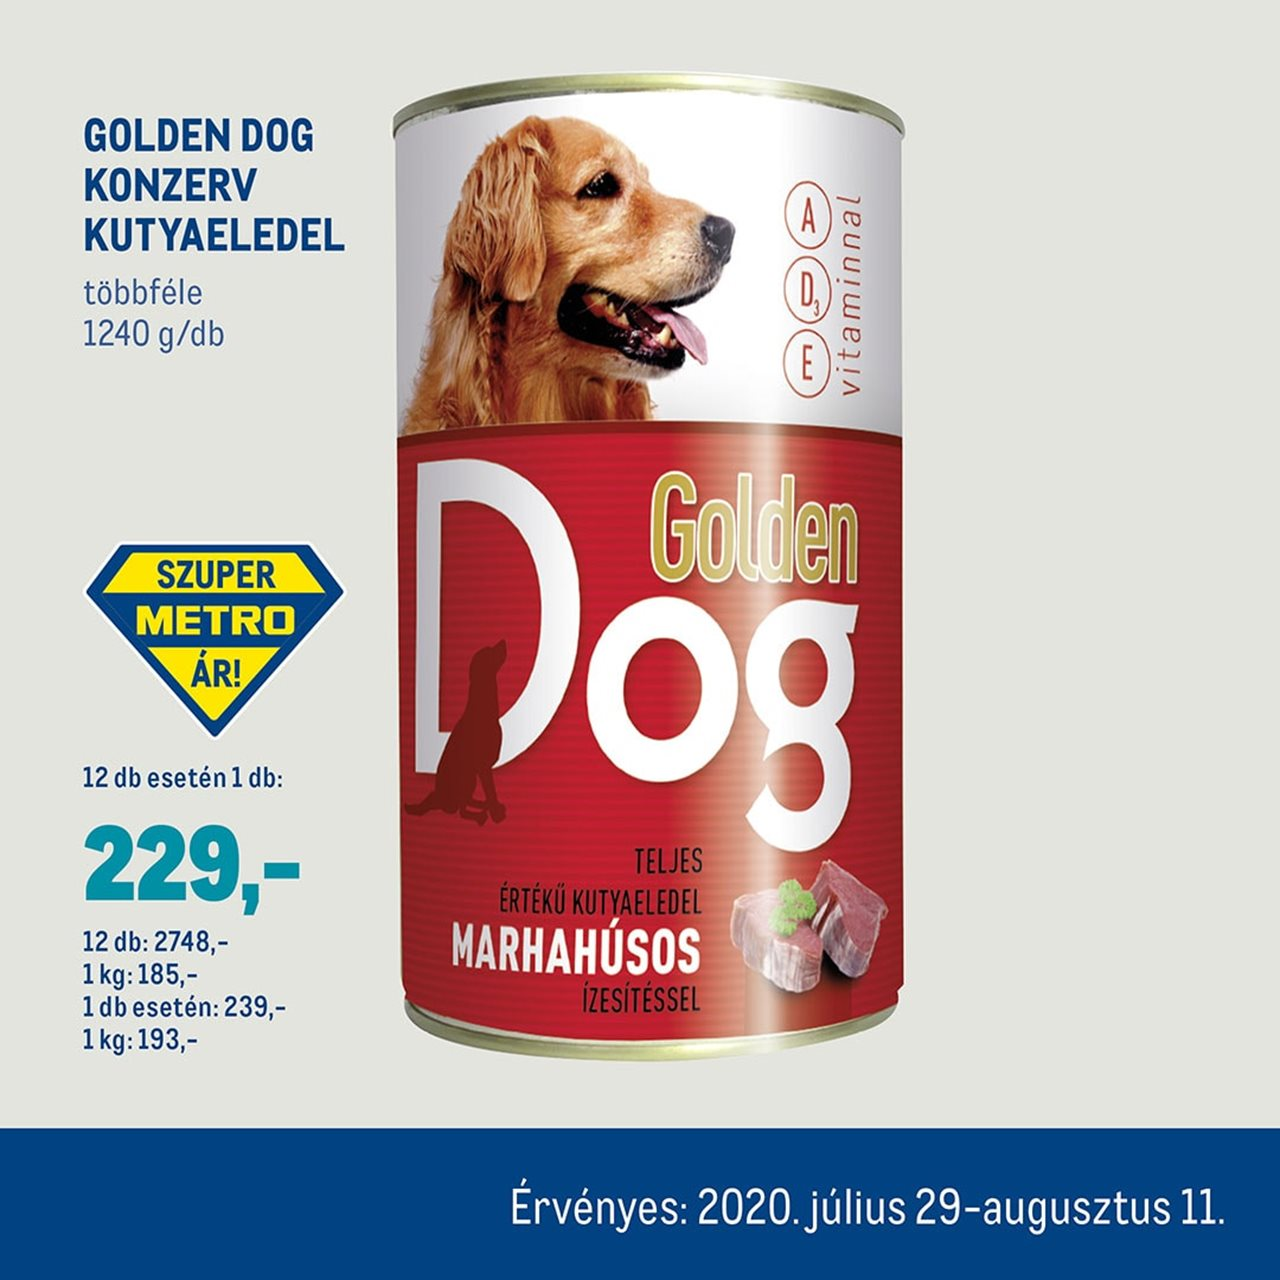 Golden Dog konzerv kutyaeledel